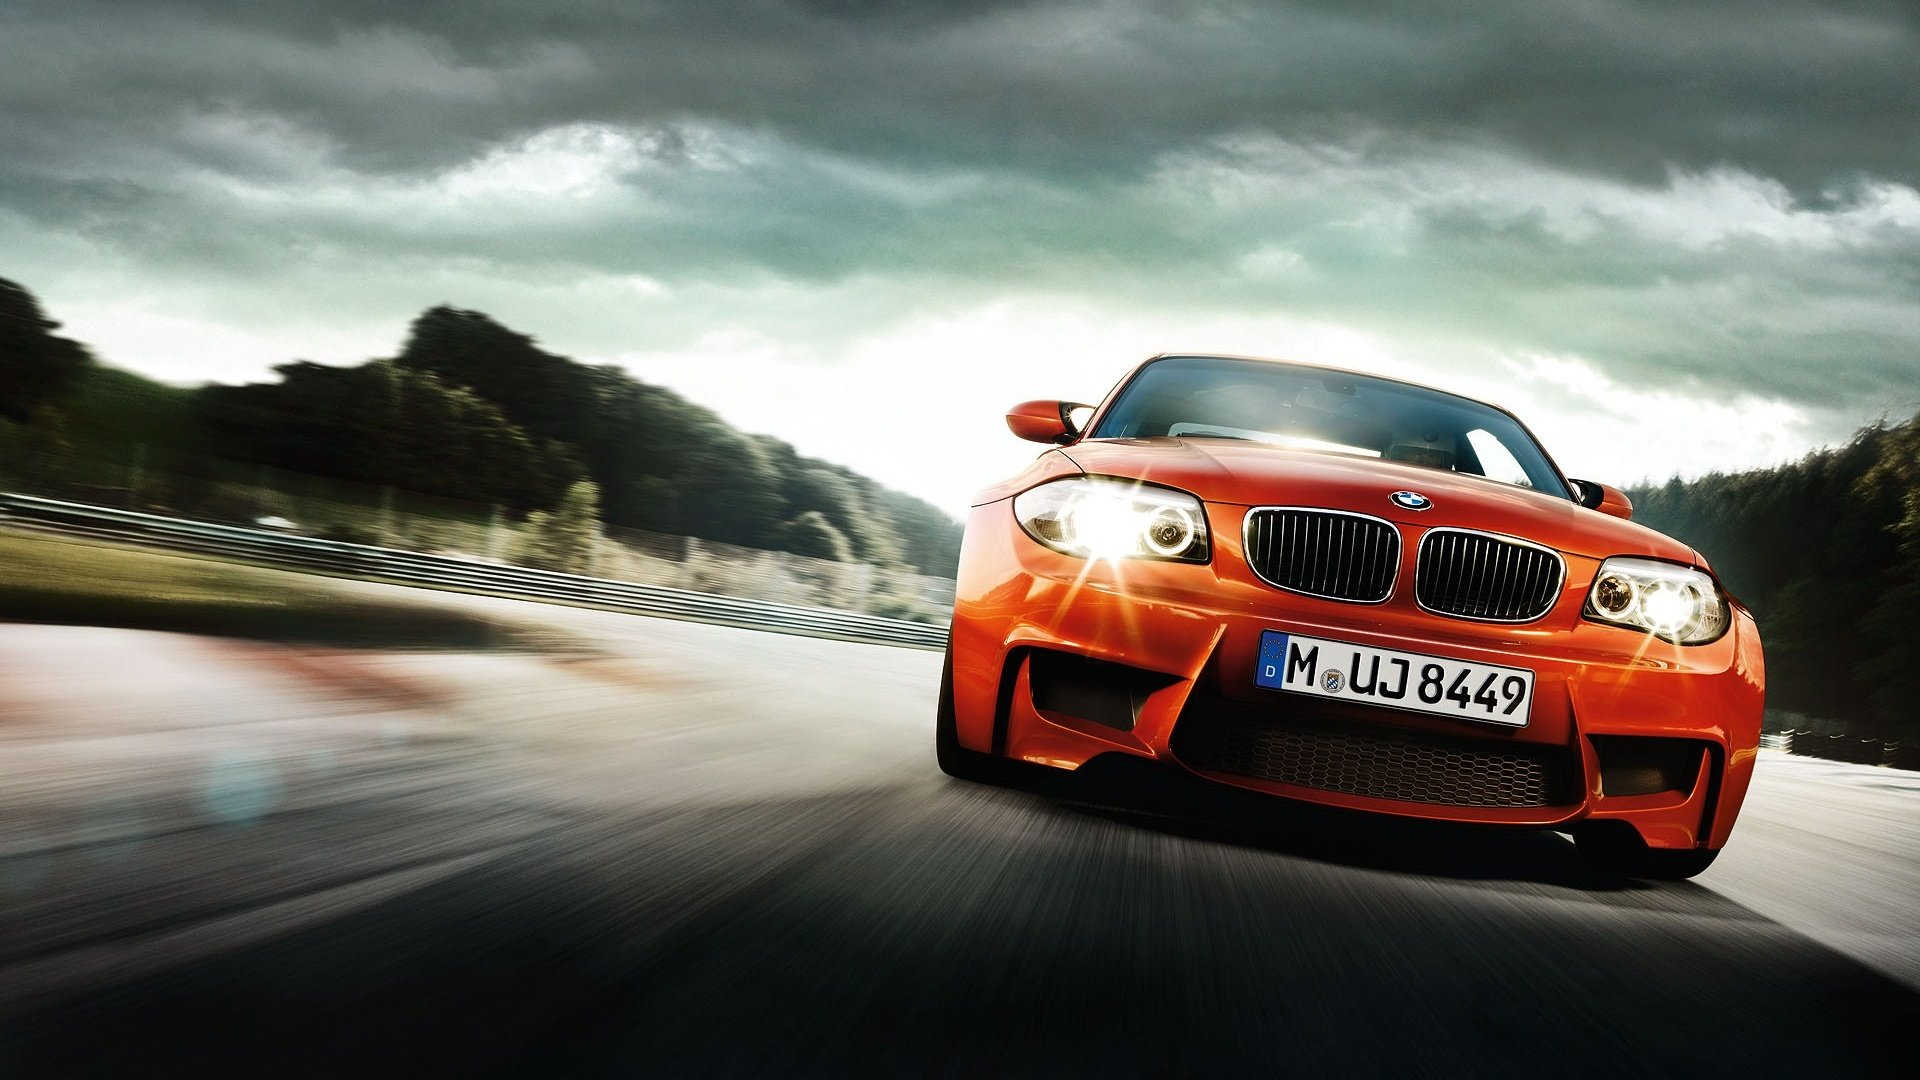 49 Speedy Car Wallpapers For Desktop Download 1920x1080